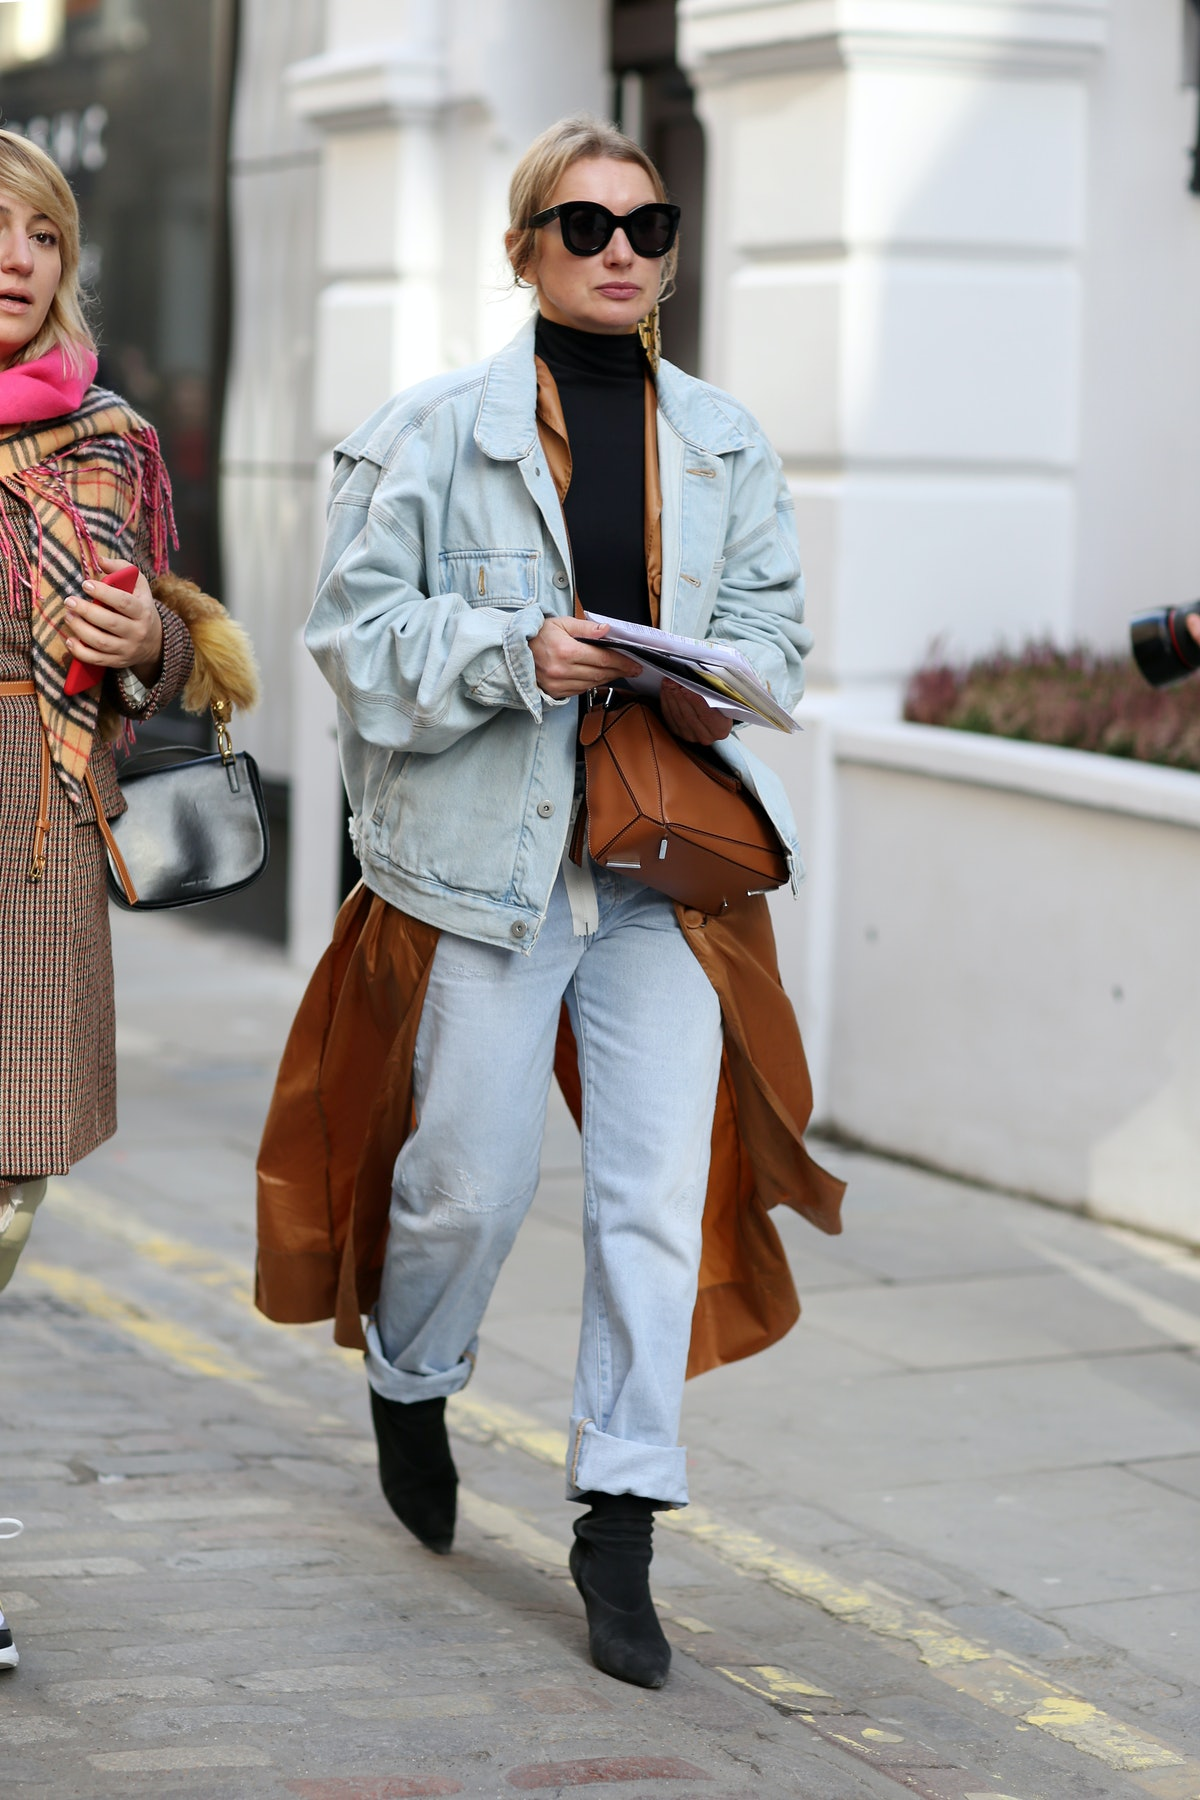 Street style photo of baggy jeans styles with a shirt dress and a denim jacket — an edgier take on C...